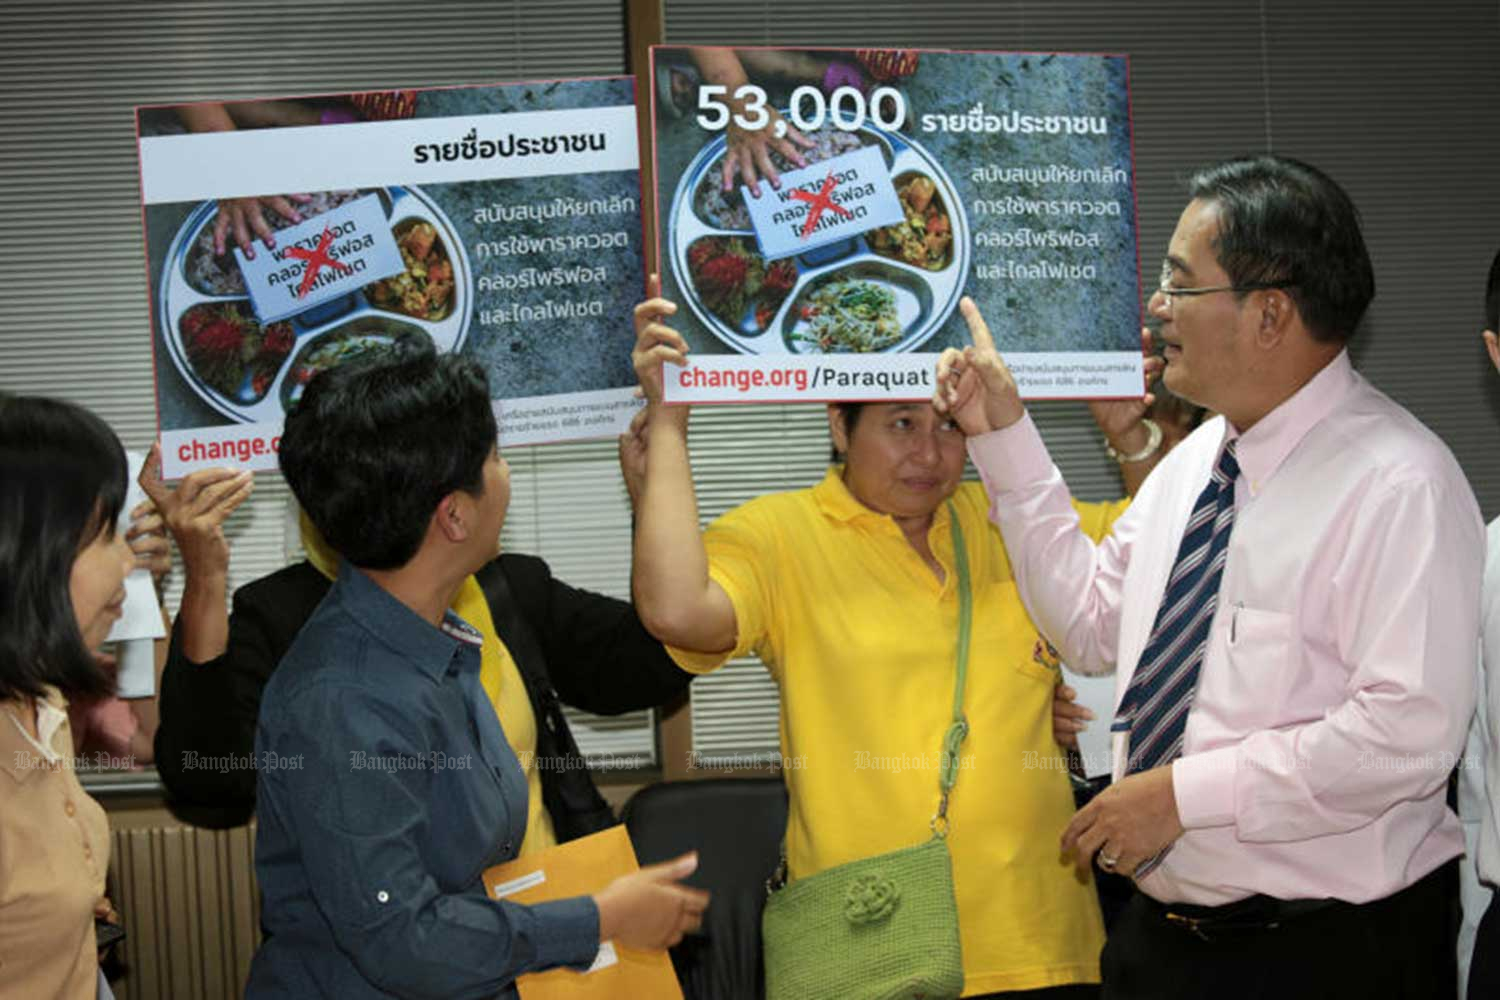 Activists gather at the Chartthaipattana Party headquarters on Oct 8 with placards showing that 53,000 people have signed a petition to ban three toxic farm chemicals. (File photo)